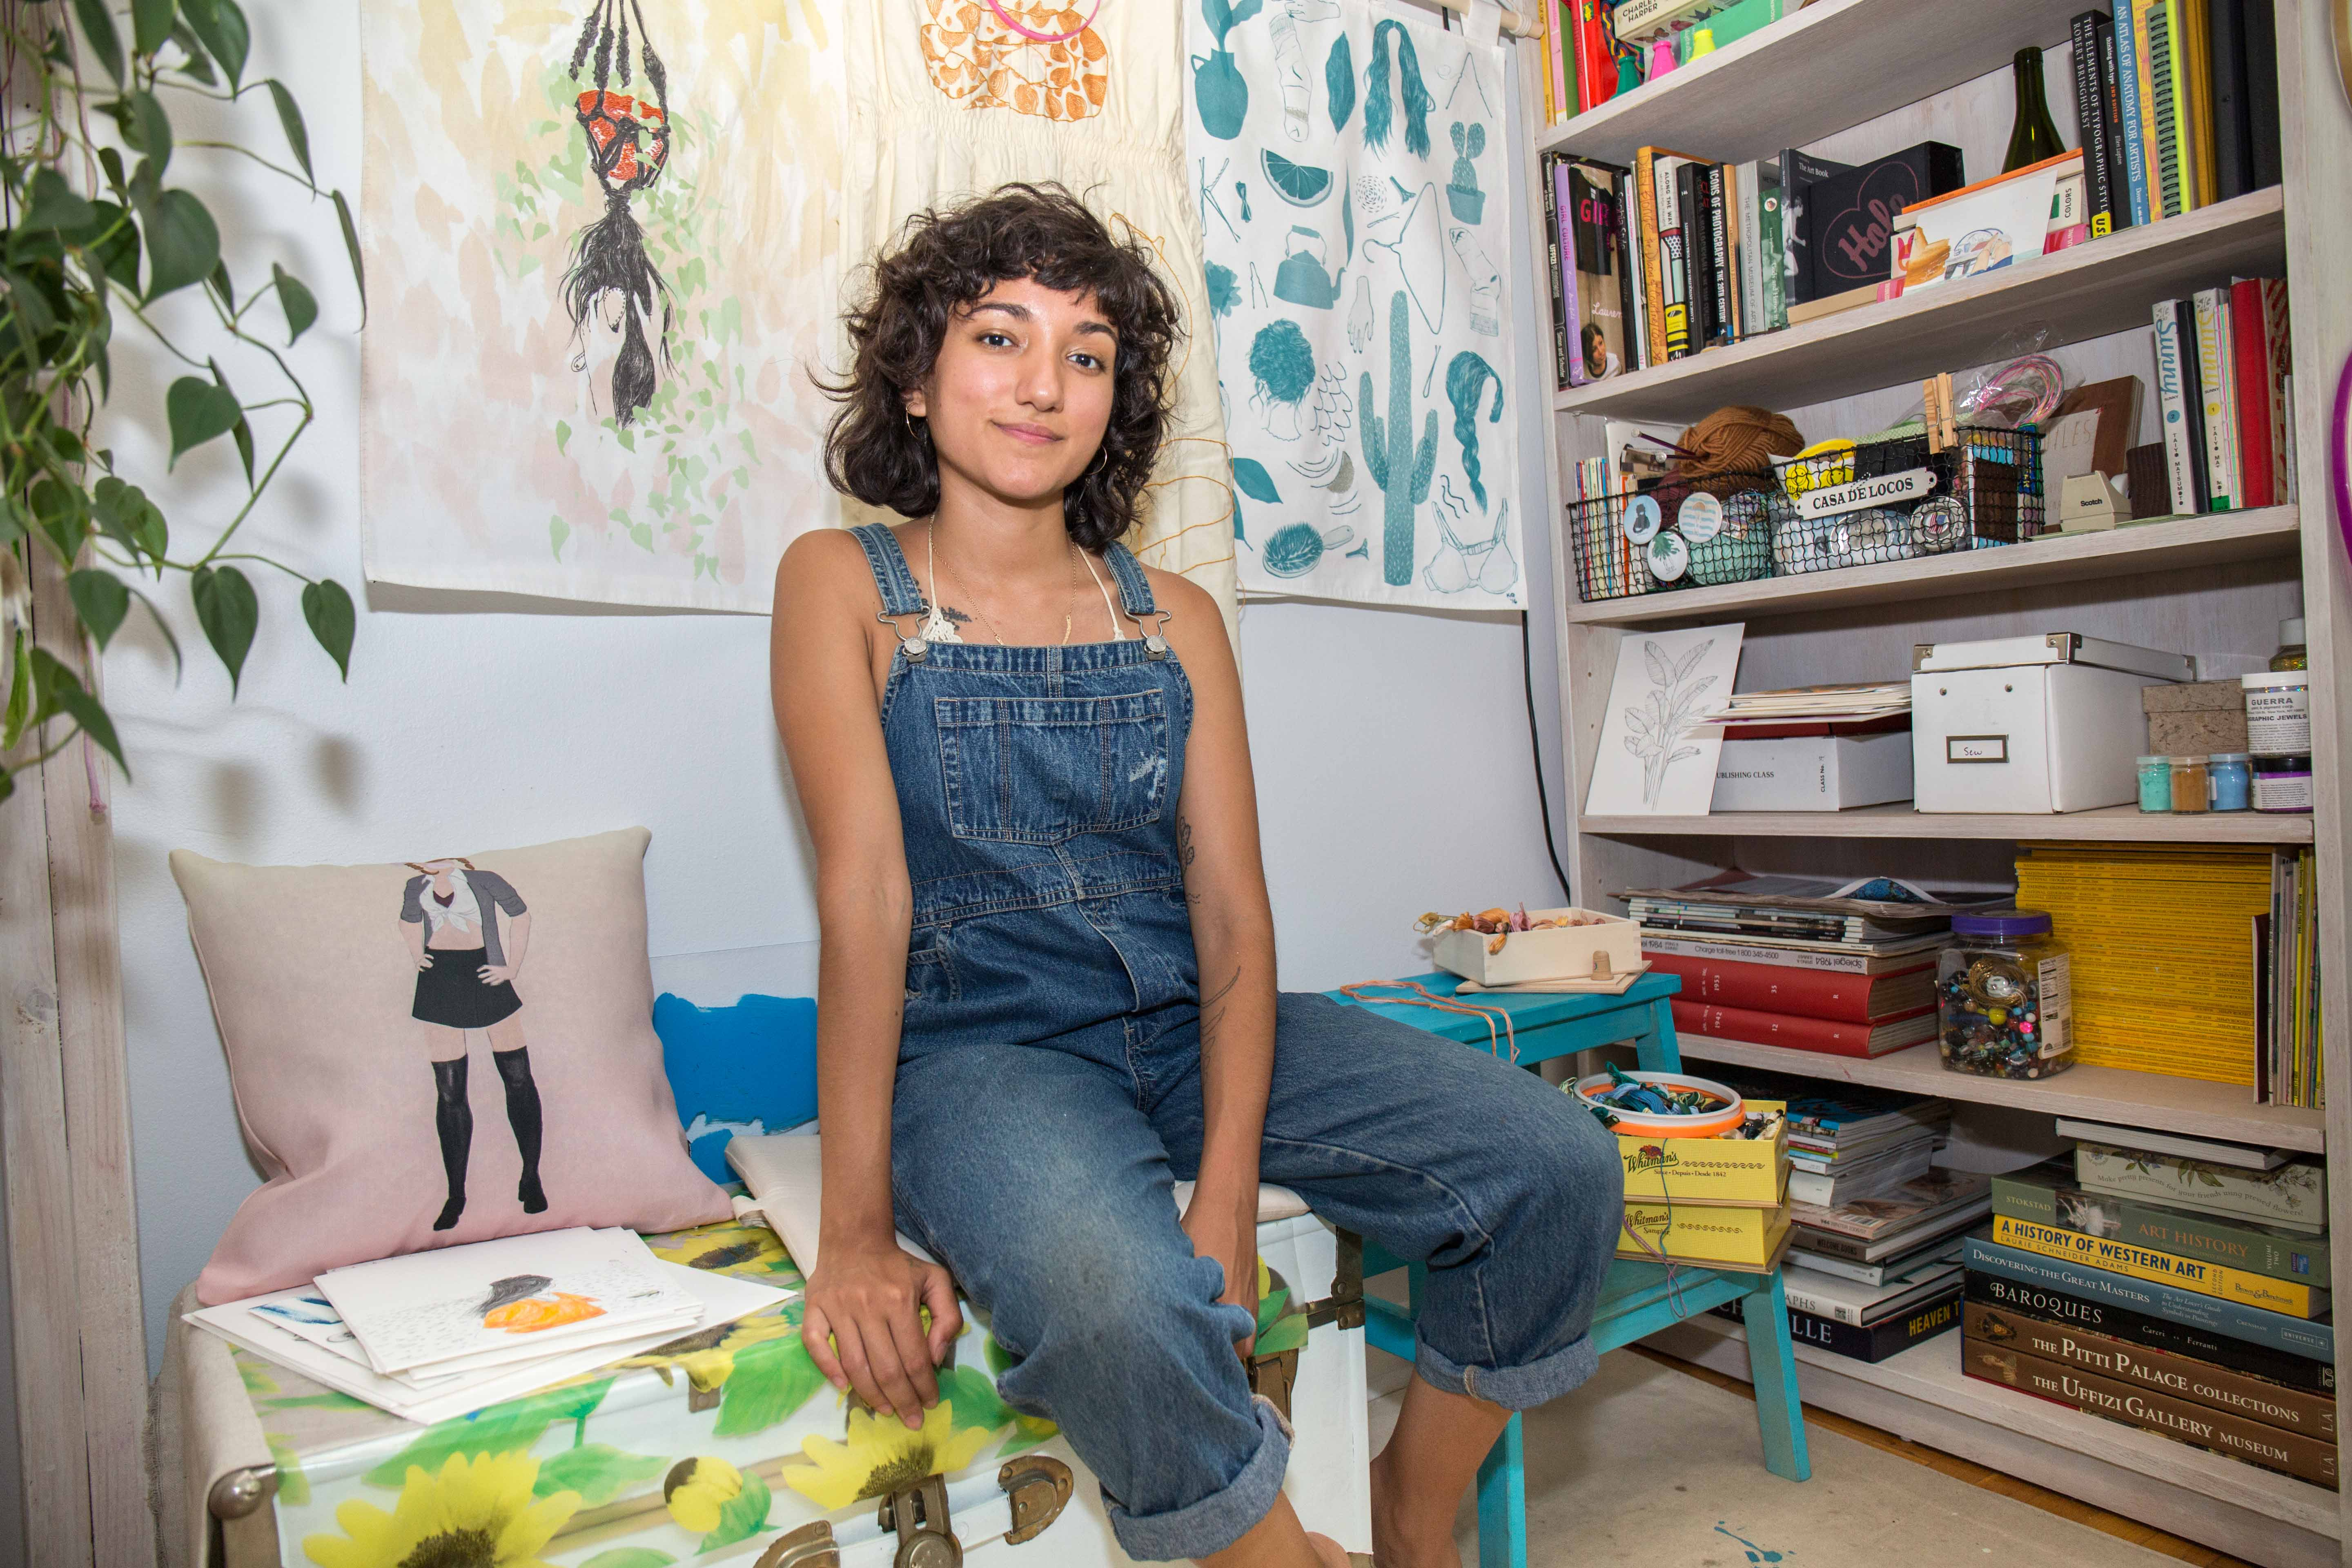 With Her TLC & Britney Spears Prints, This Bronx-Based Artist Will Make You Long for the 2000s